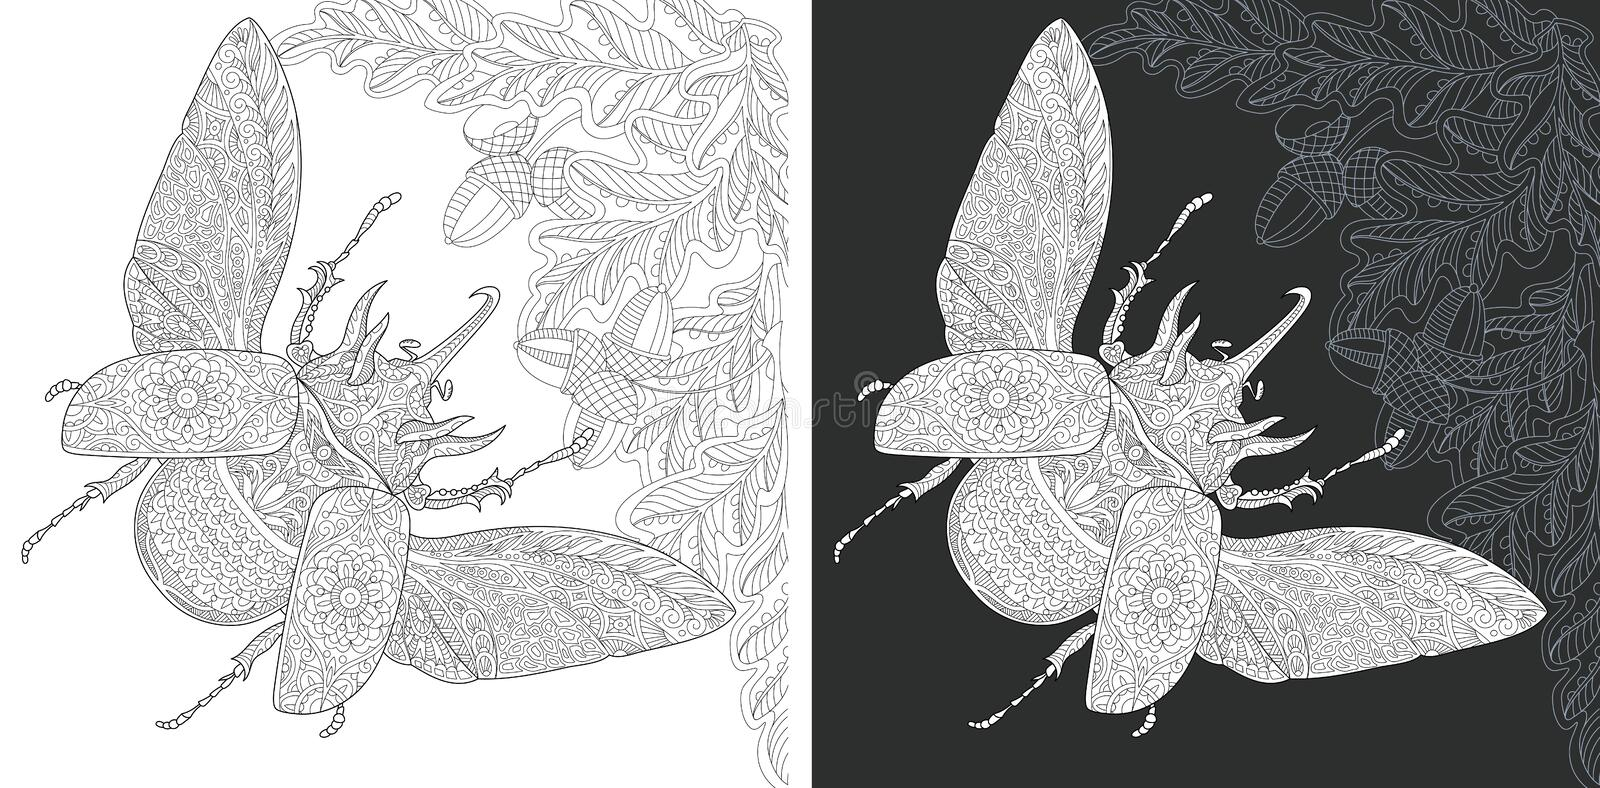 Bug Coloring Page. Bug. Coloring Page. Coloring Book. Colouring picture with rhinoceros beetle drawn in zentangle style. Antistress freehand sketch drawing vector illustration